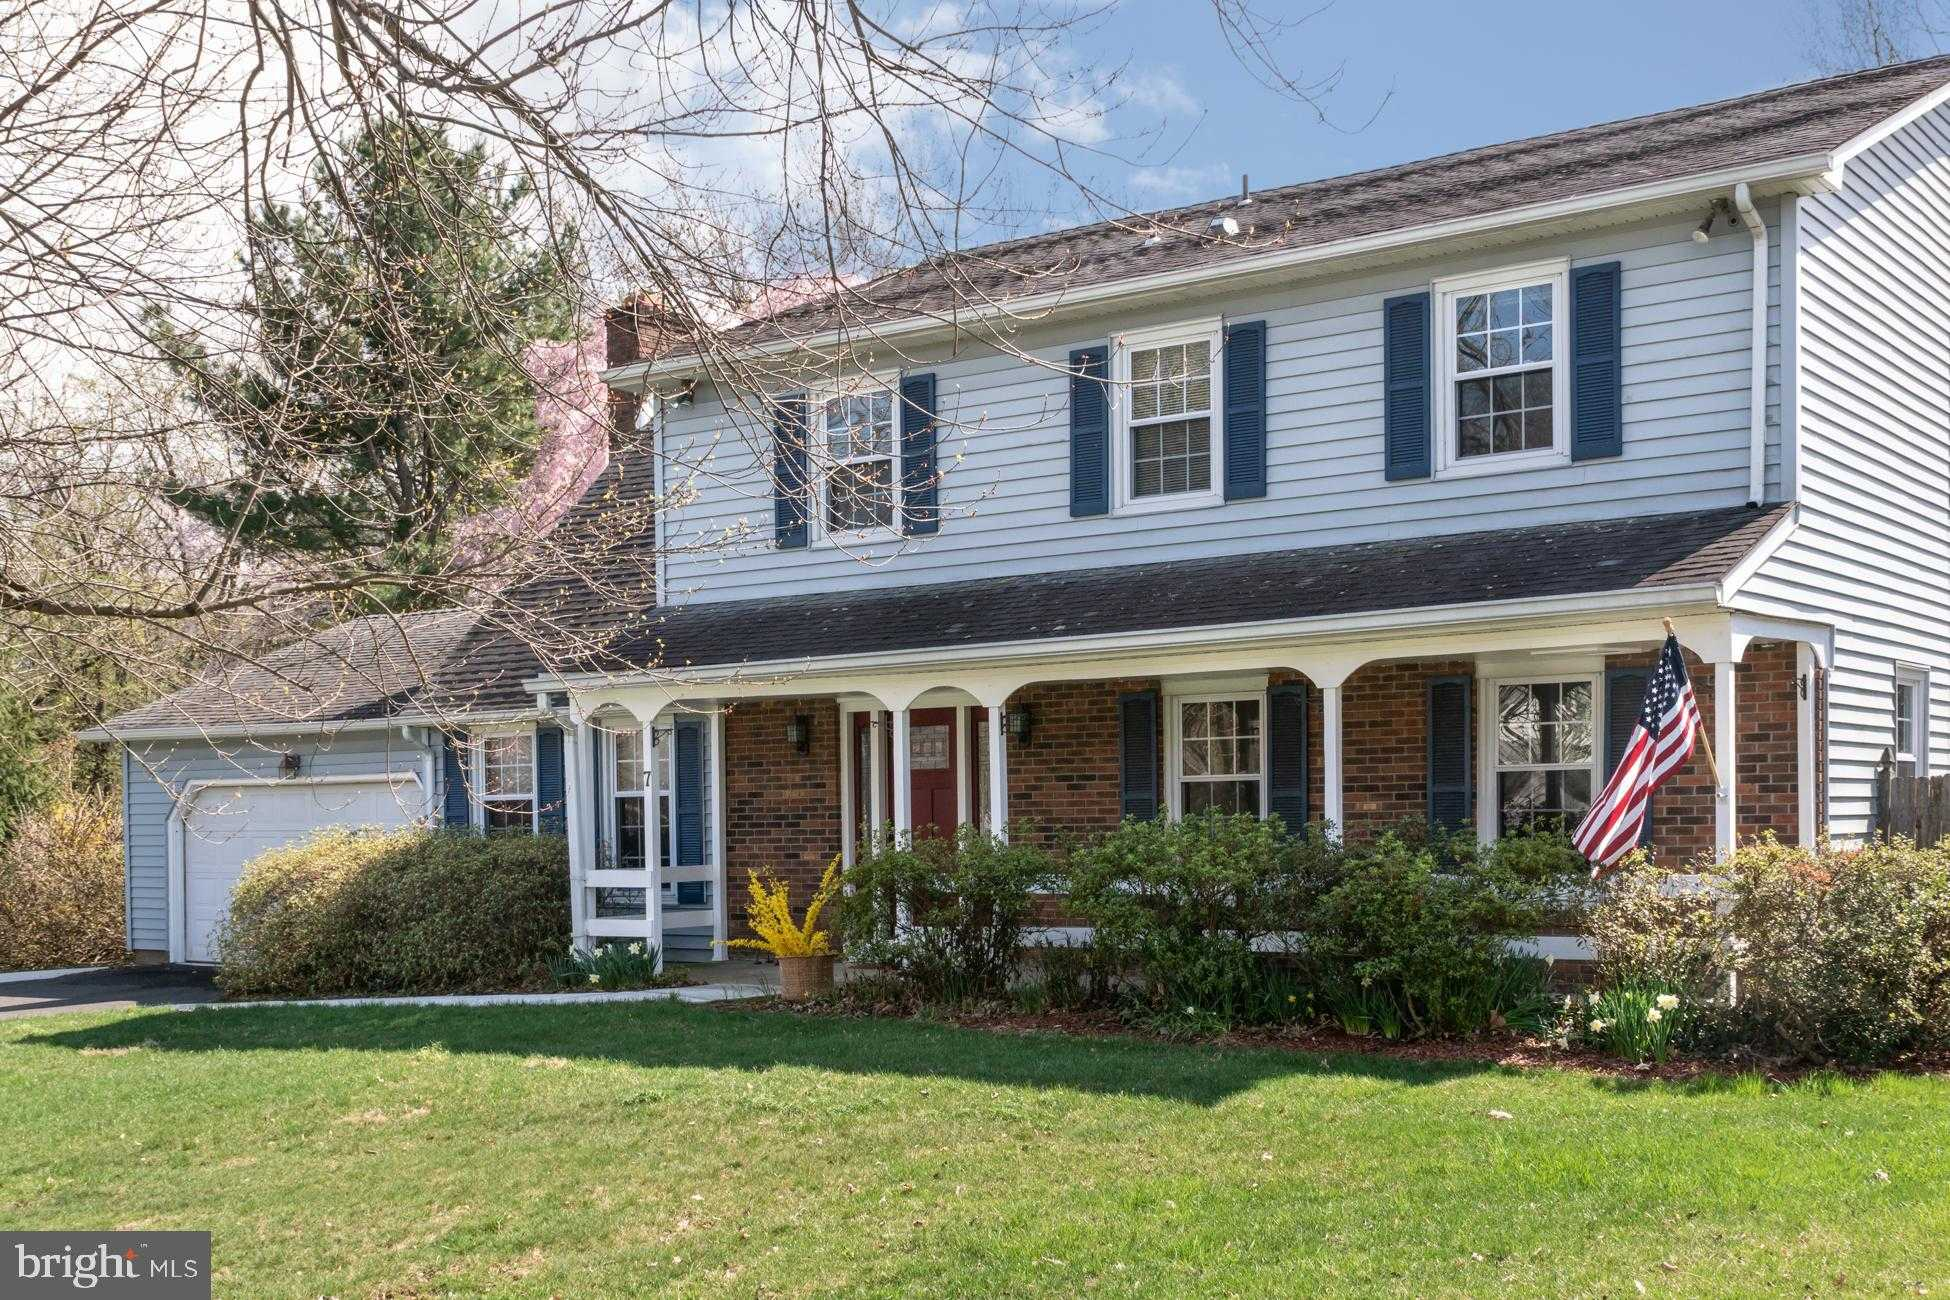 $474,900 - 5Br/3Ba -  for Sale in Lawrence Woods, Lawrenceville